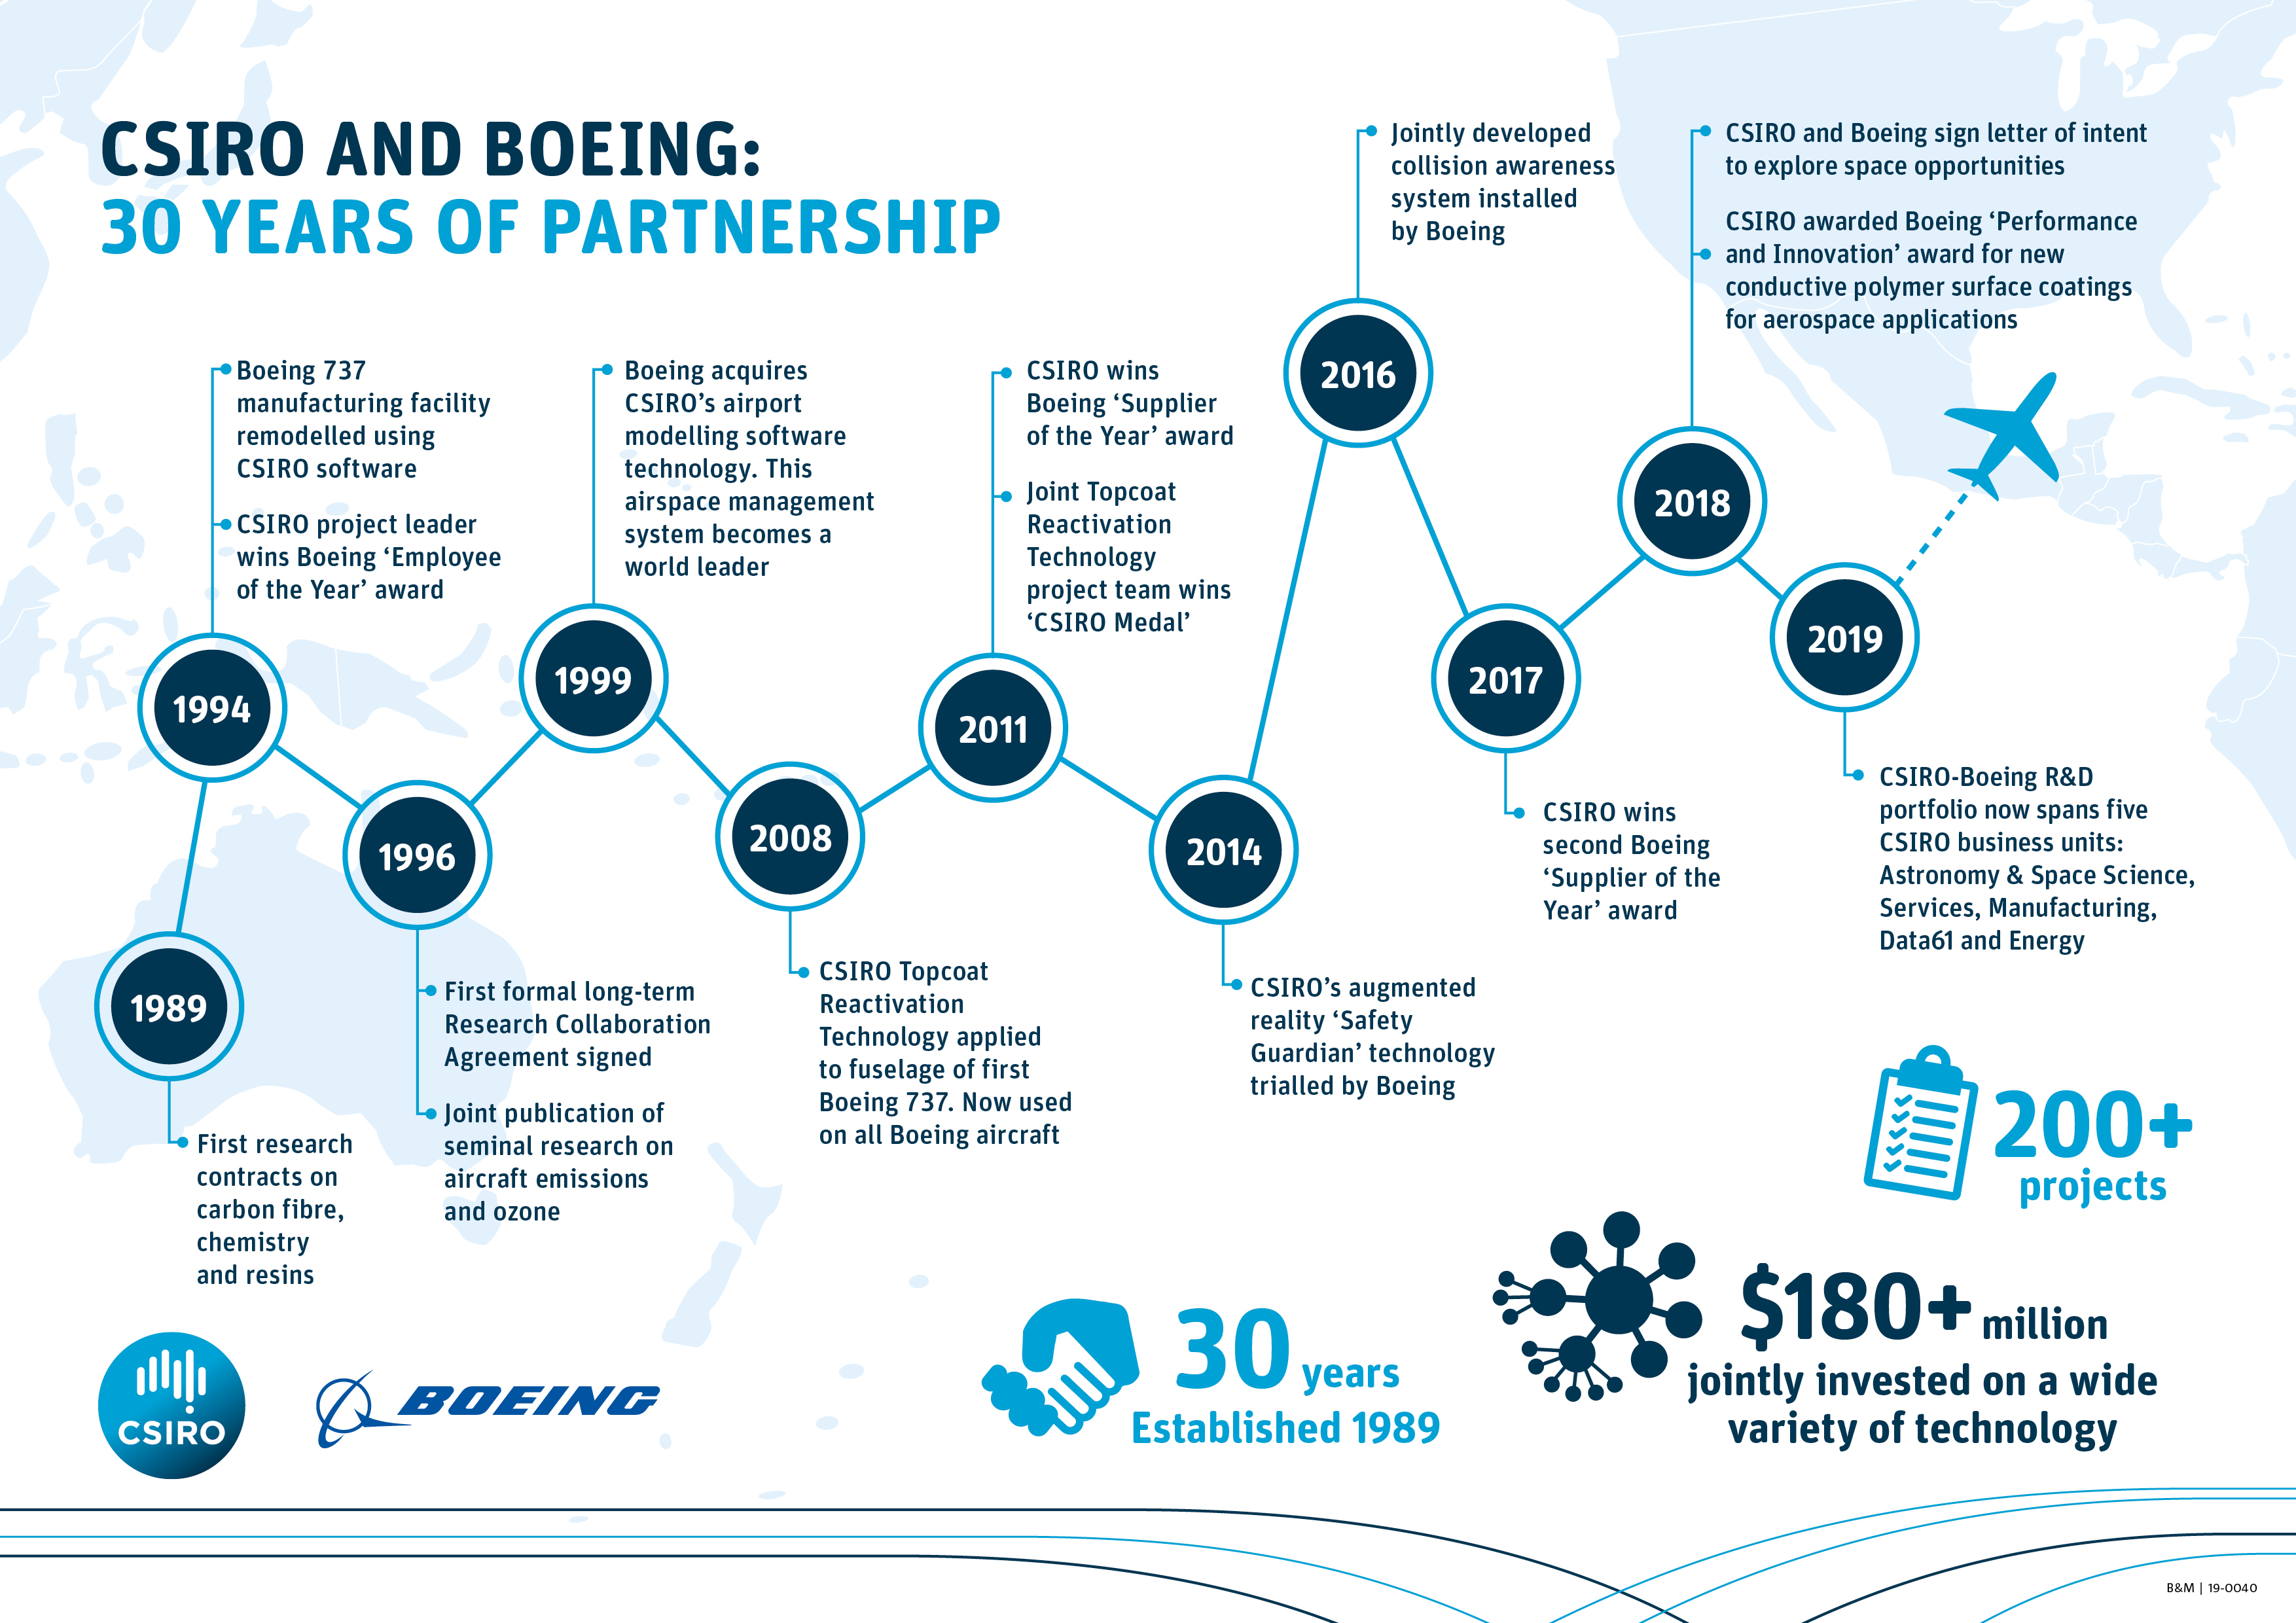 Infographic showing timeline of CSIRO and Boeing 30 year partnership.